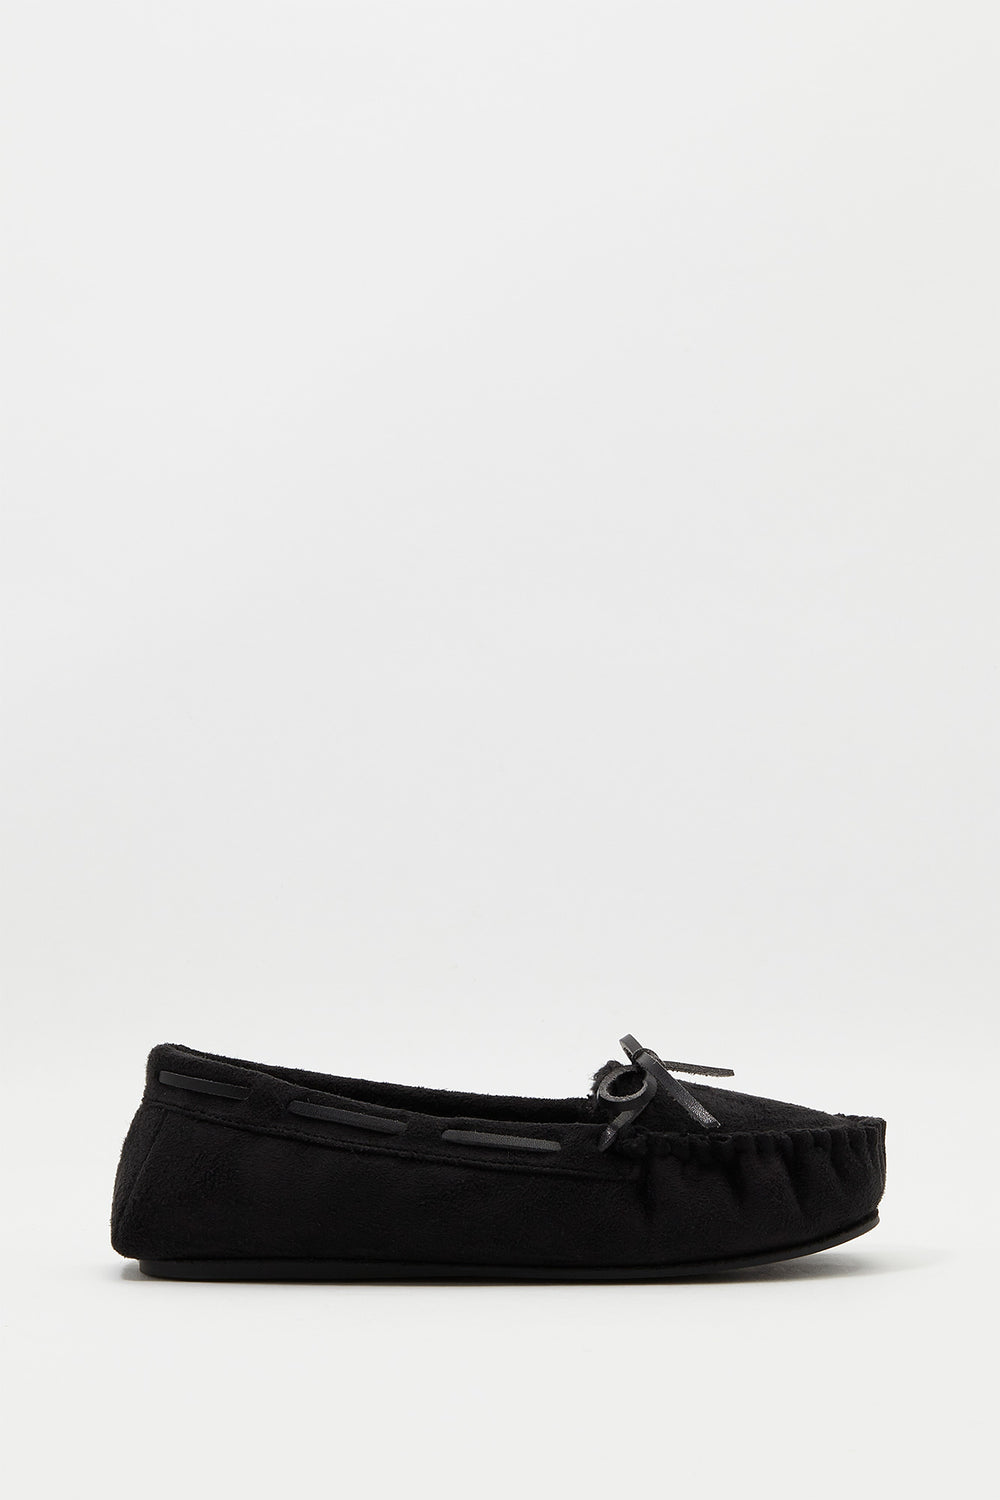 Moccasin Bow Shoe Black